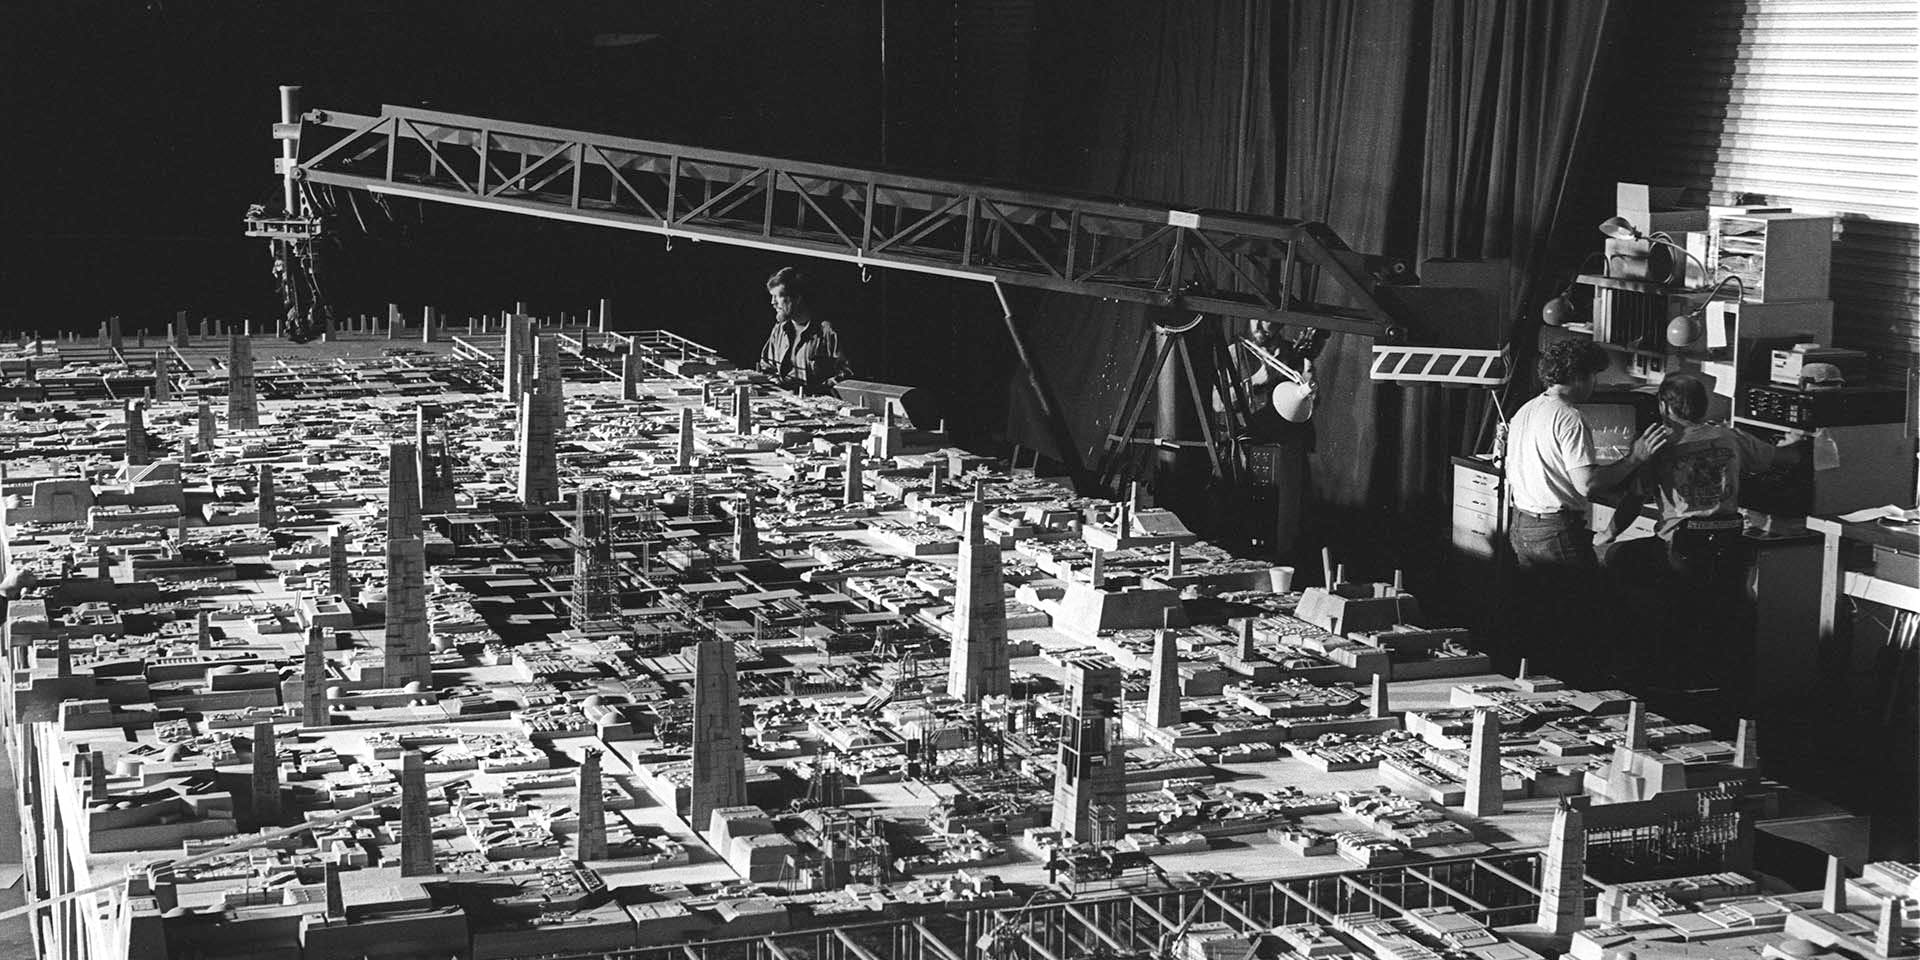 For close-up shots of the Death Star in A New Hope, ILM made intricate surfaces often by 'kit-bashing' existing model kits